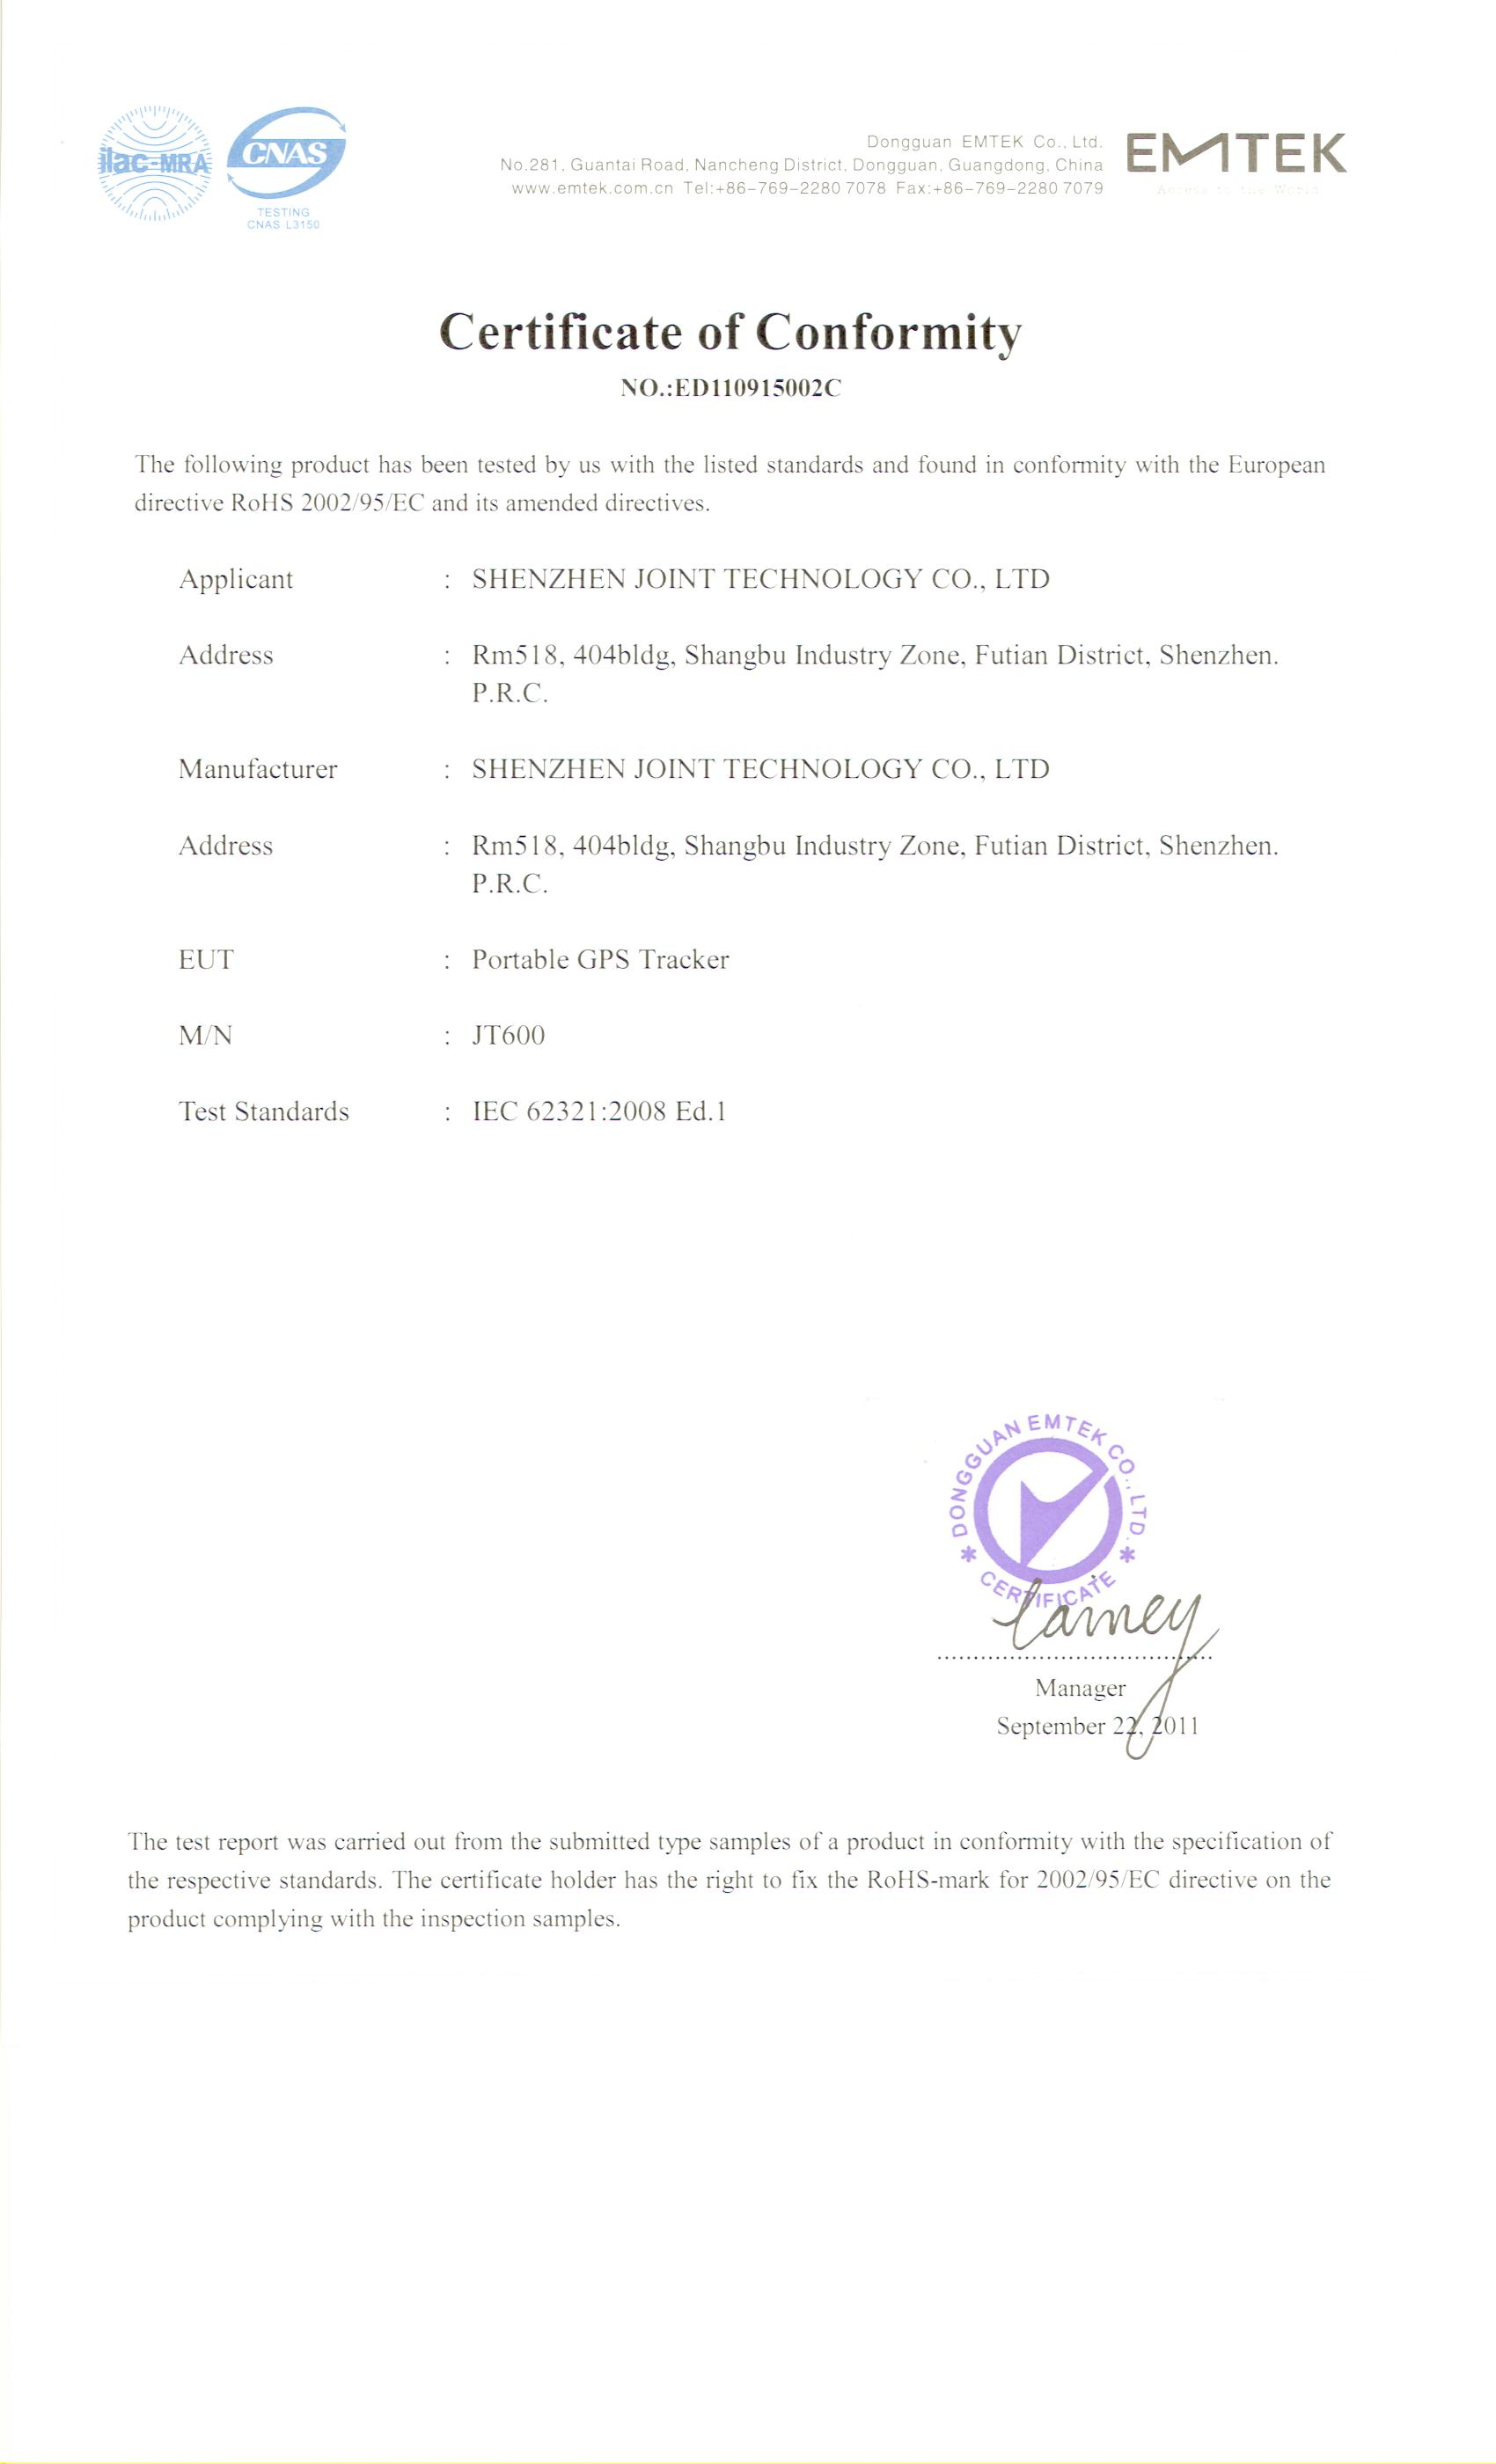 rohs certificate for portable gps tracker jt600